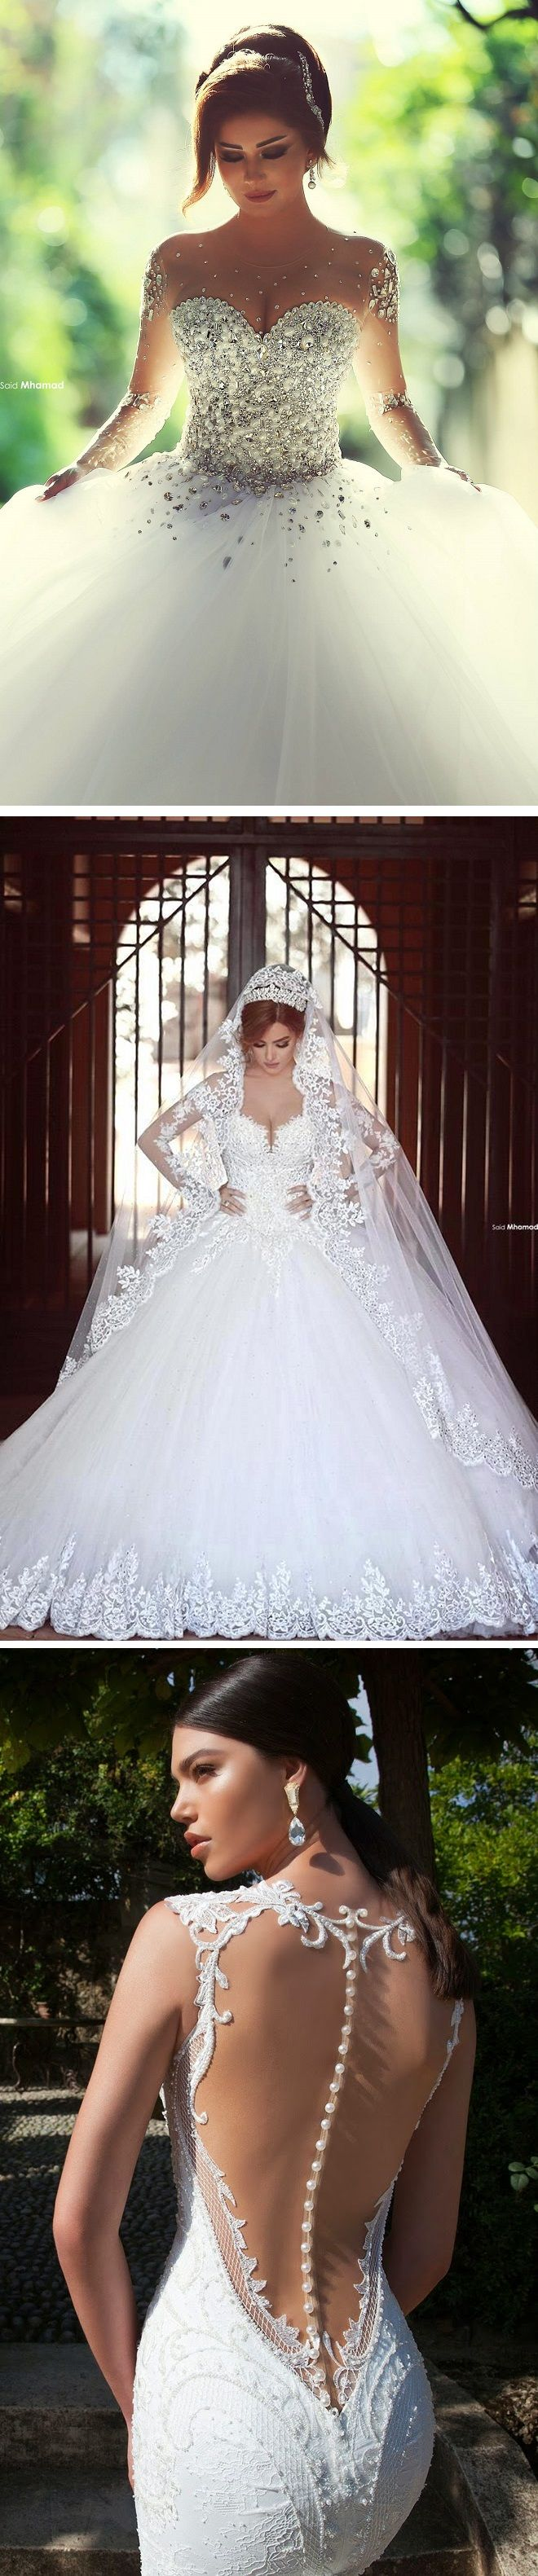 10 Jaw-Droppingly Beautiful Wedding Dresses To Obsess Over! #weddings